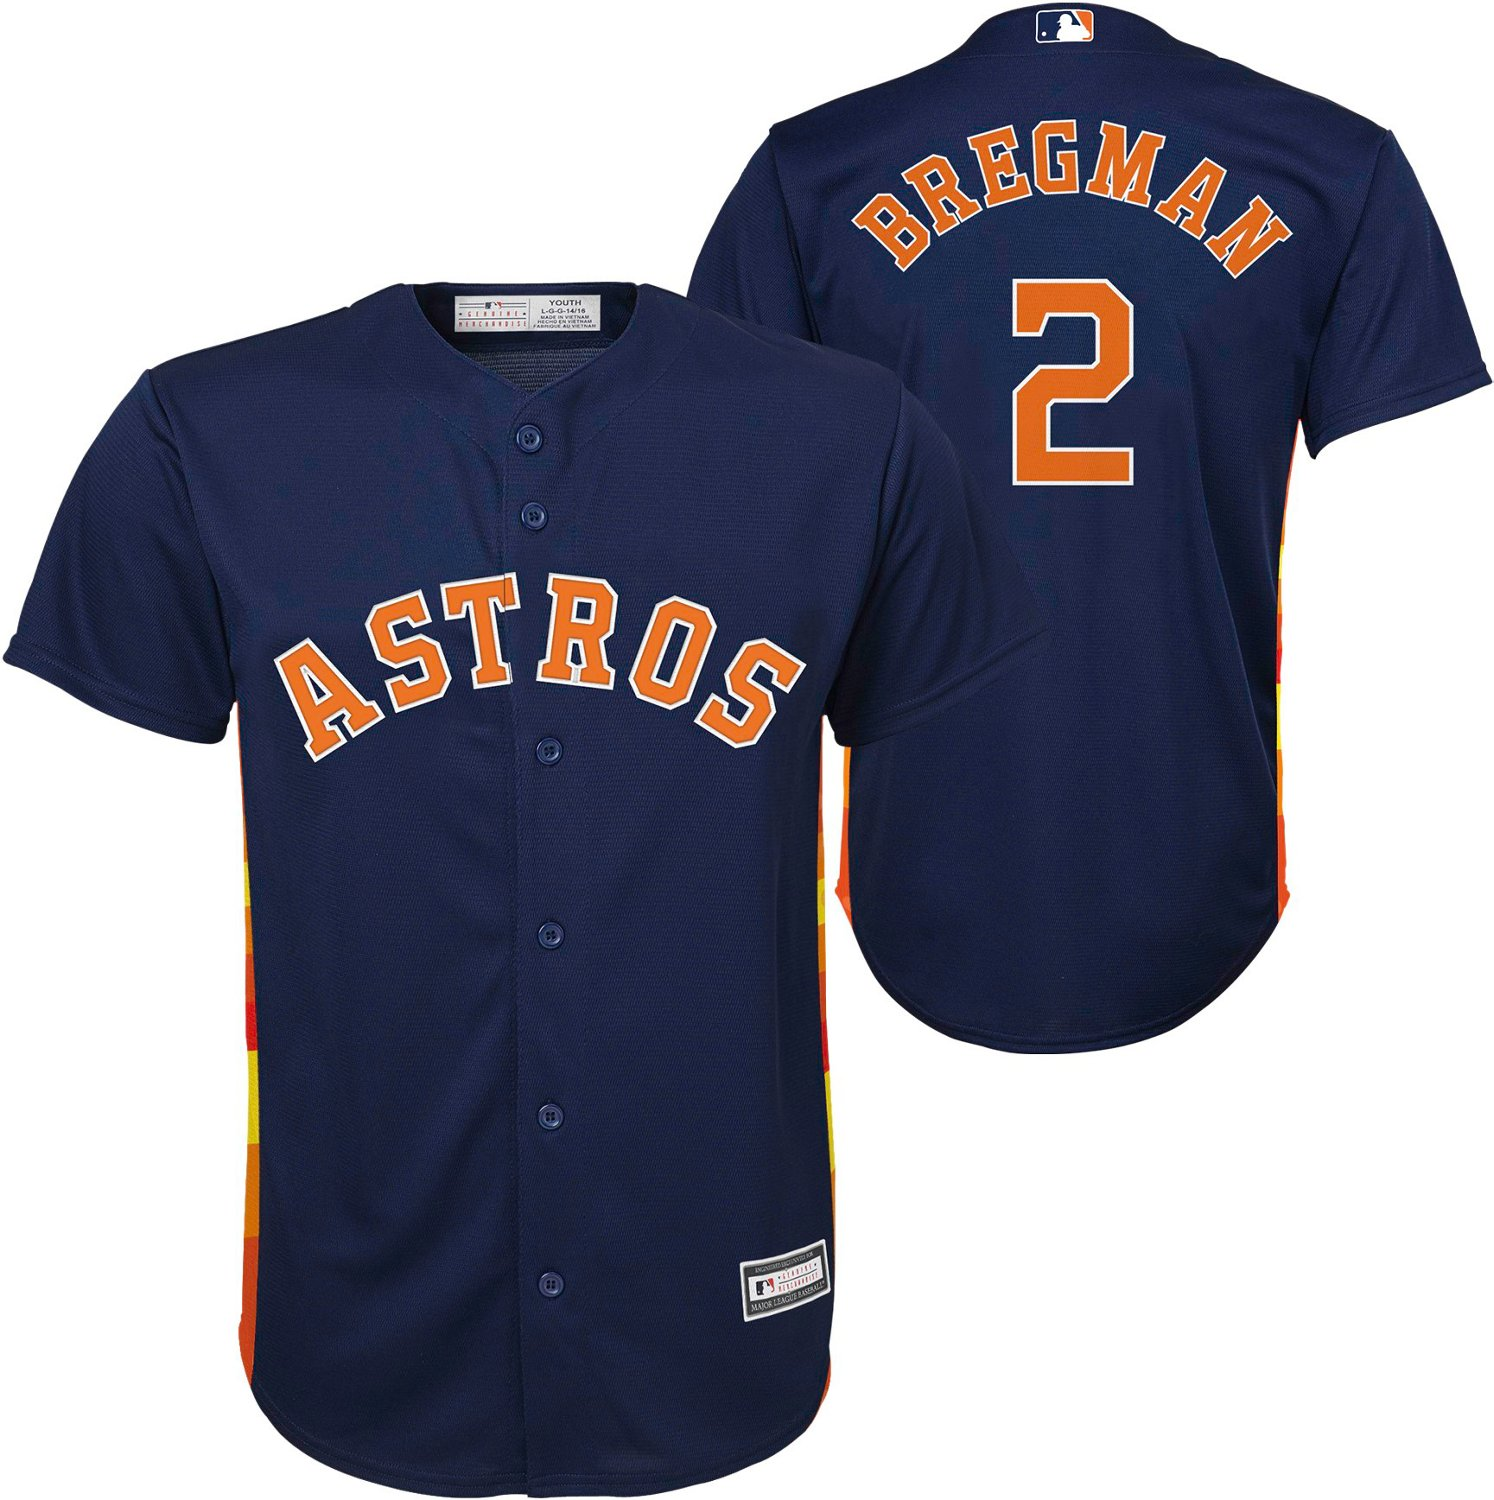 cheap for discount 72ff6 95cf7 MLB Boys' Houston Astros Alex Bregman Alt 2 Sanitized Replica Jersey